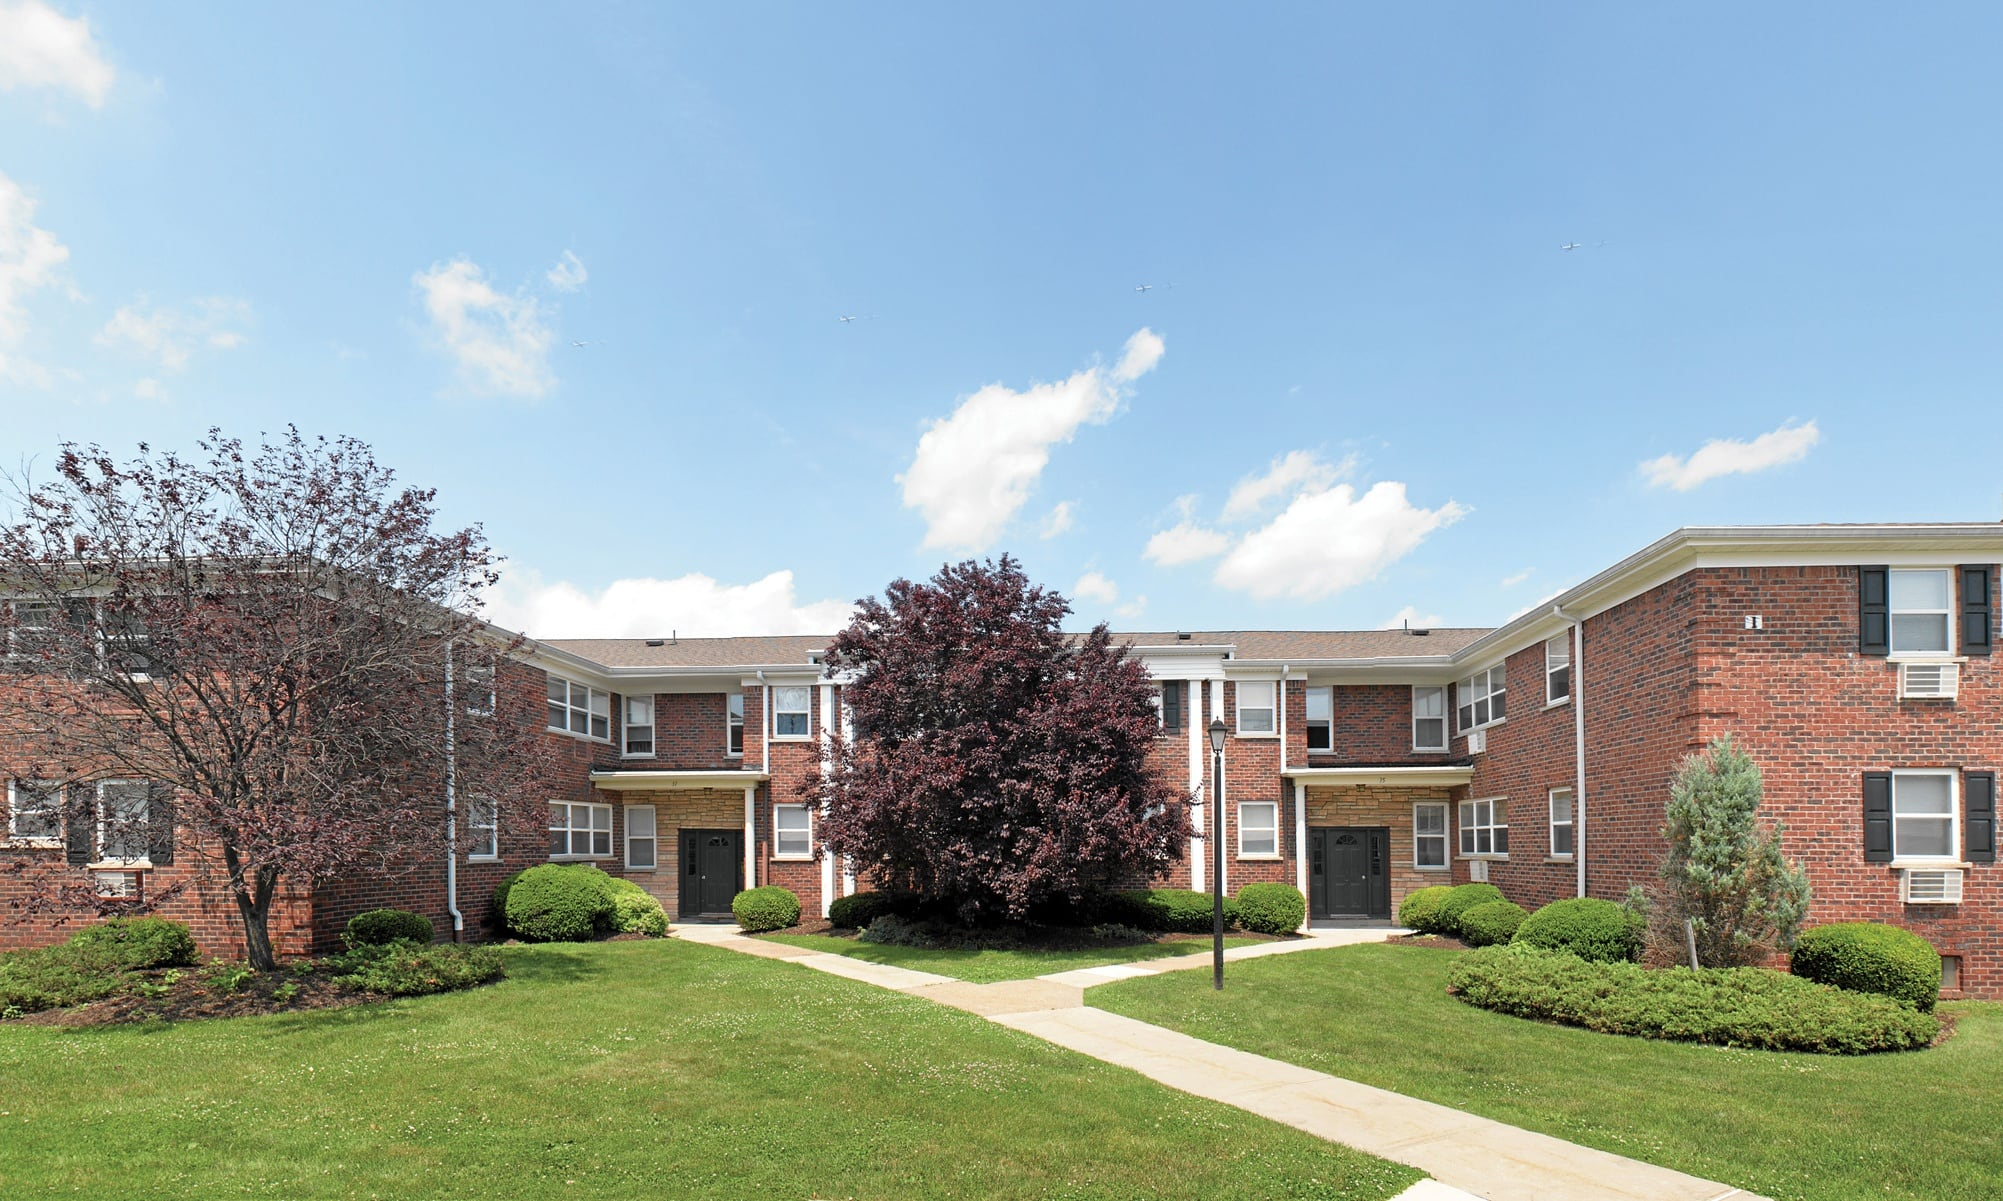 Apartments available in Wayne, NJ